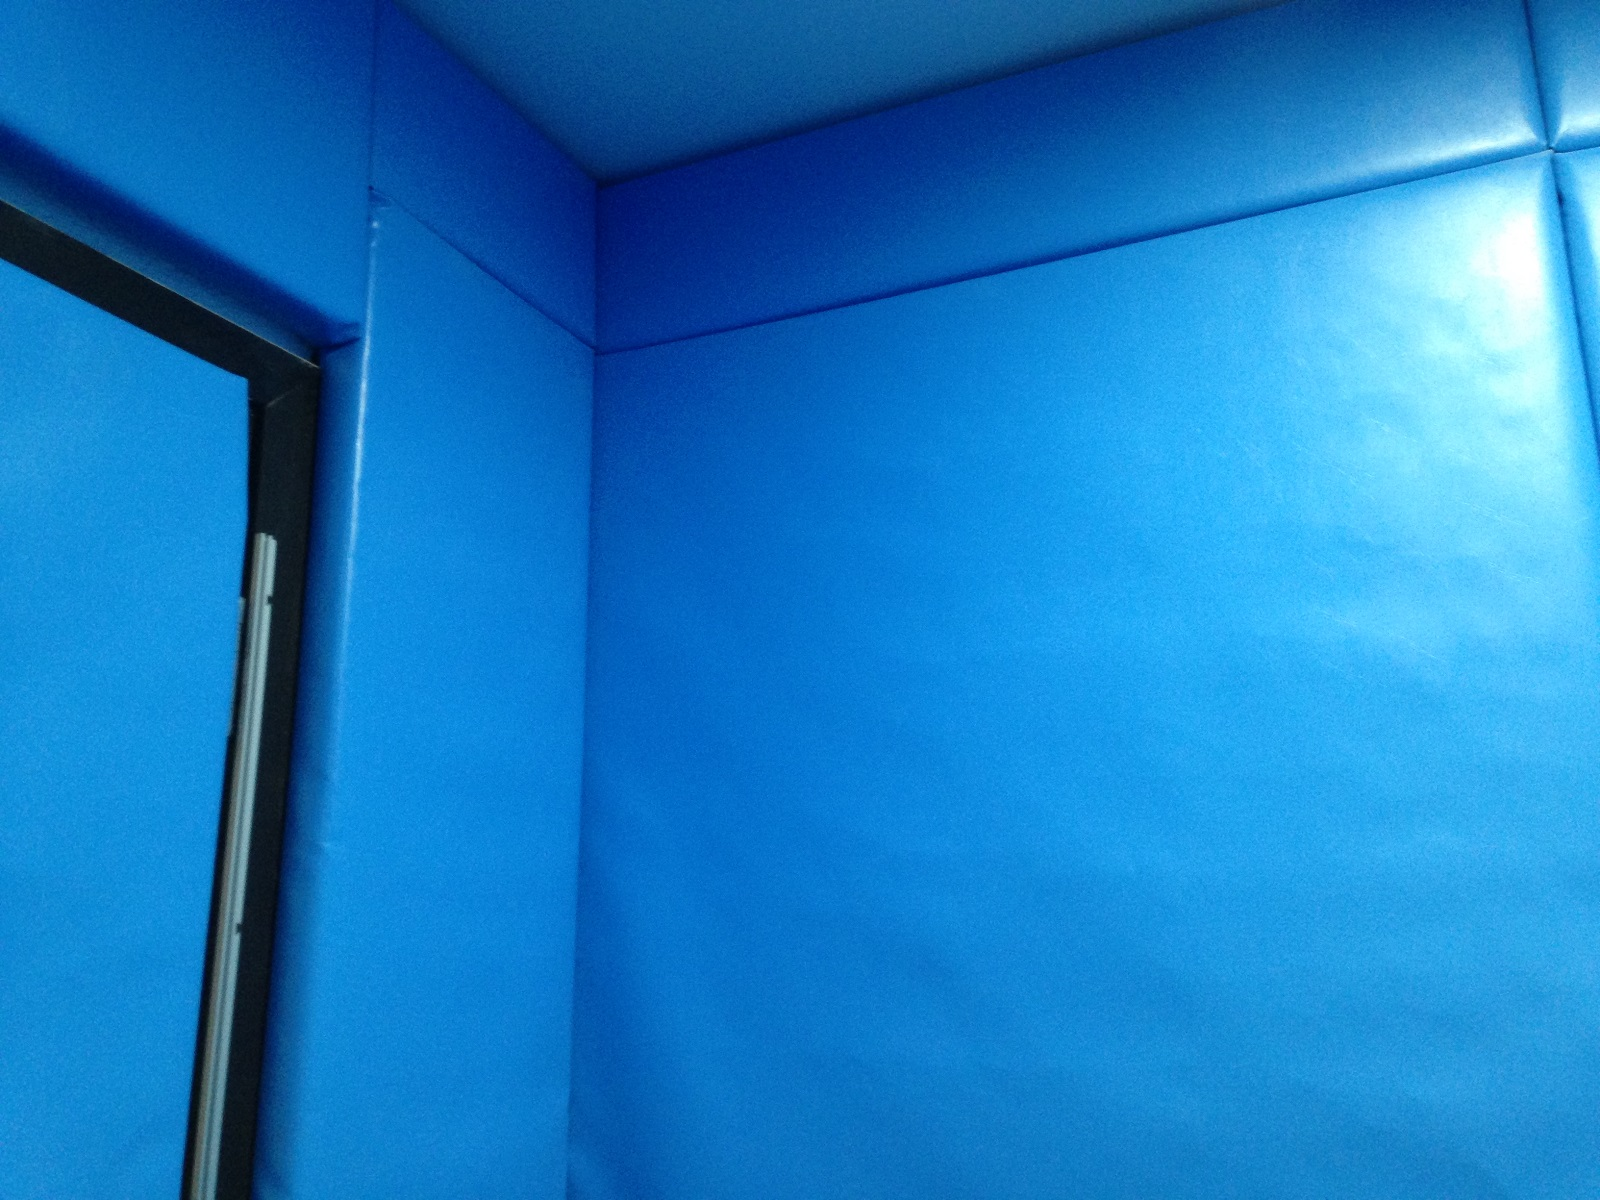 Floor And Wall Padding Protective Soft Play Calming Room